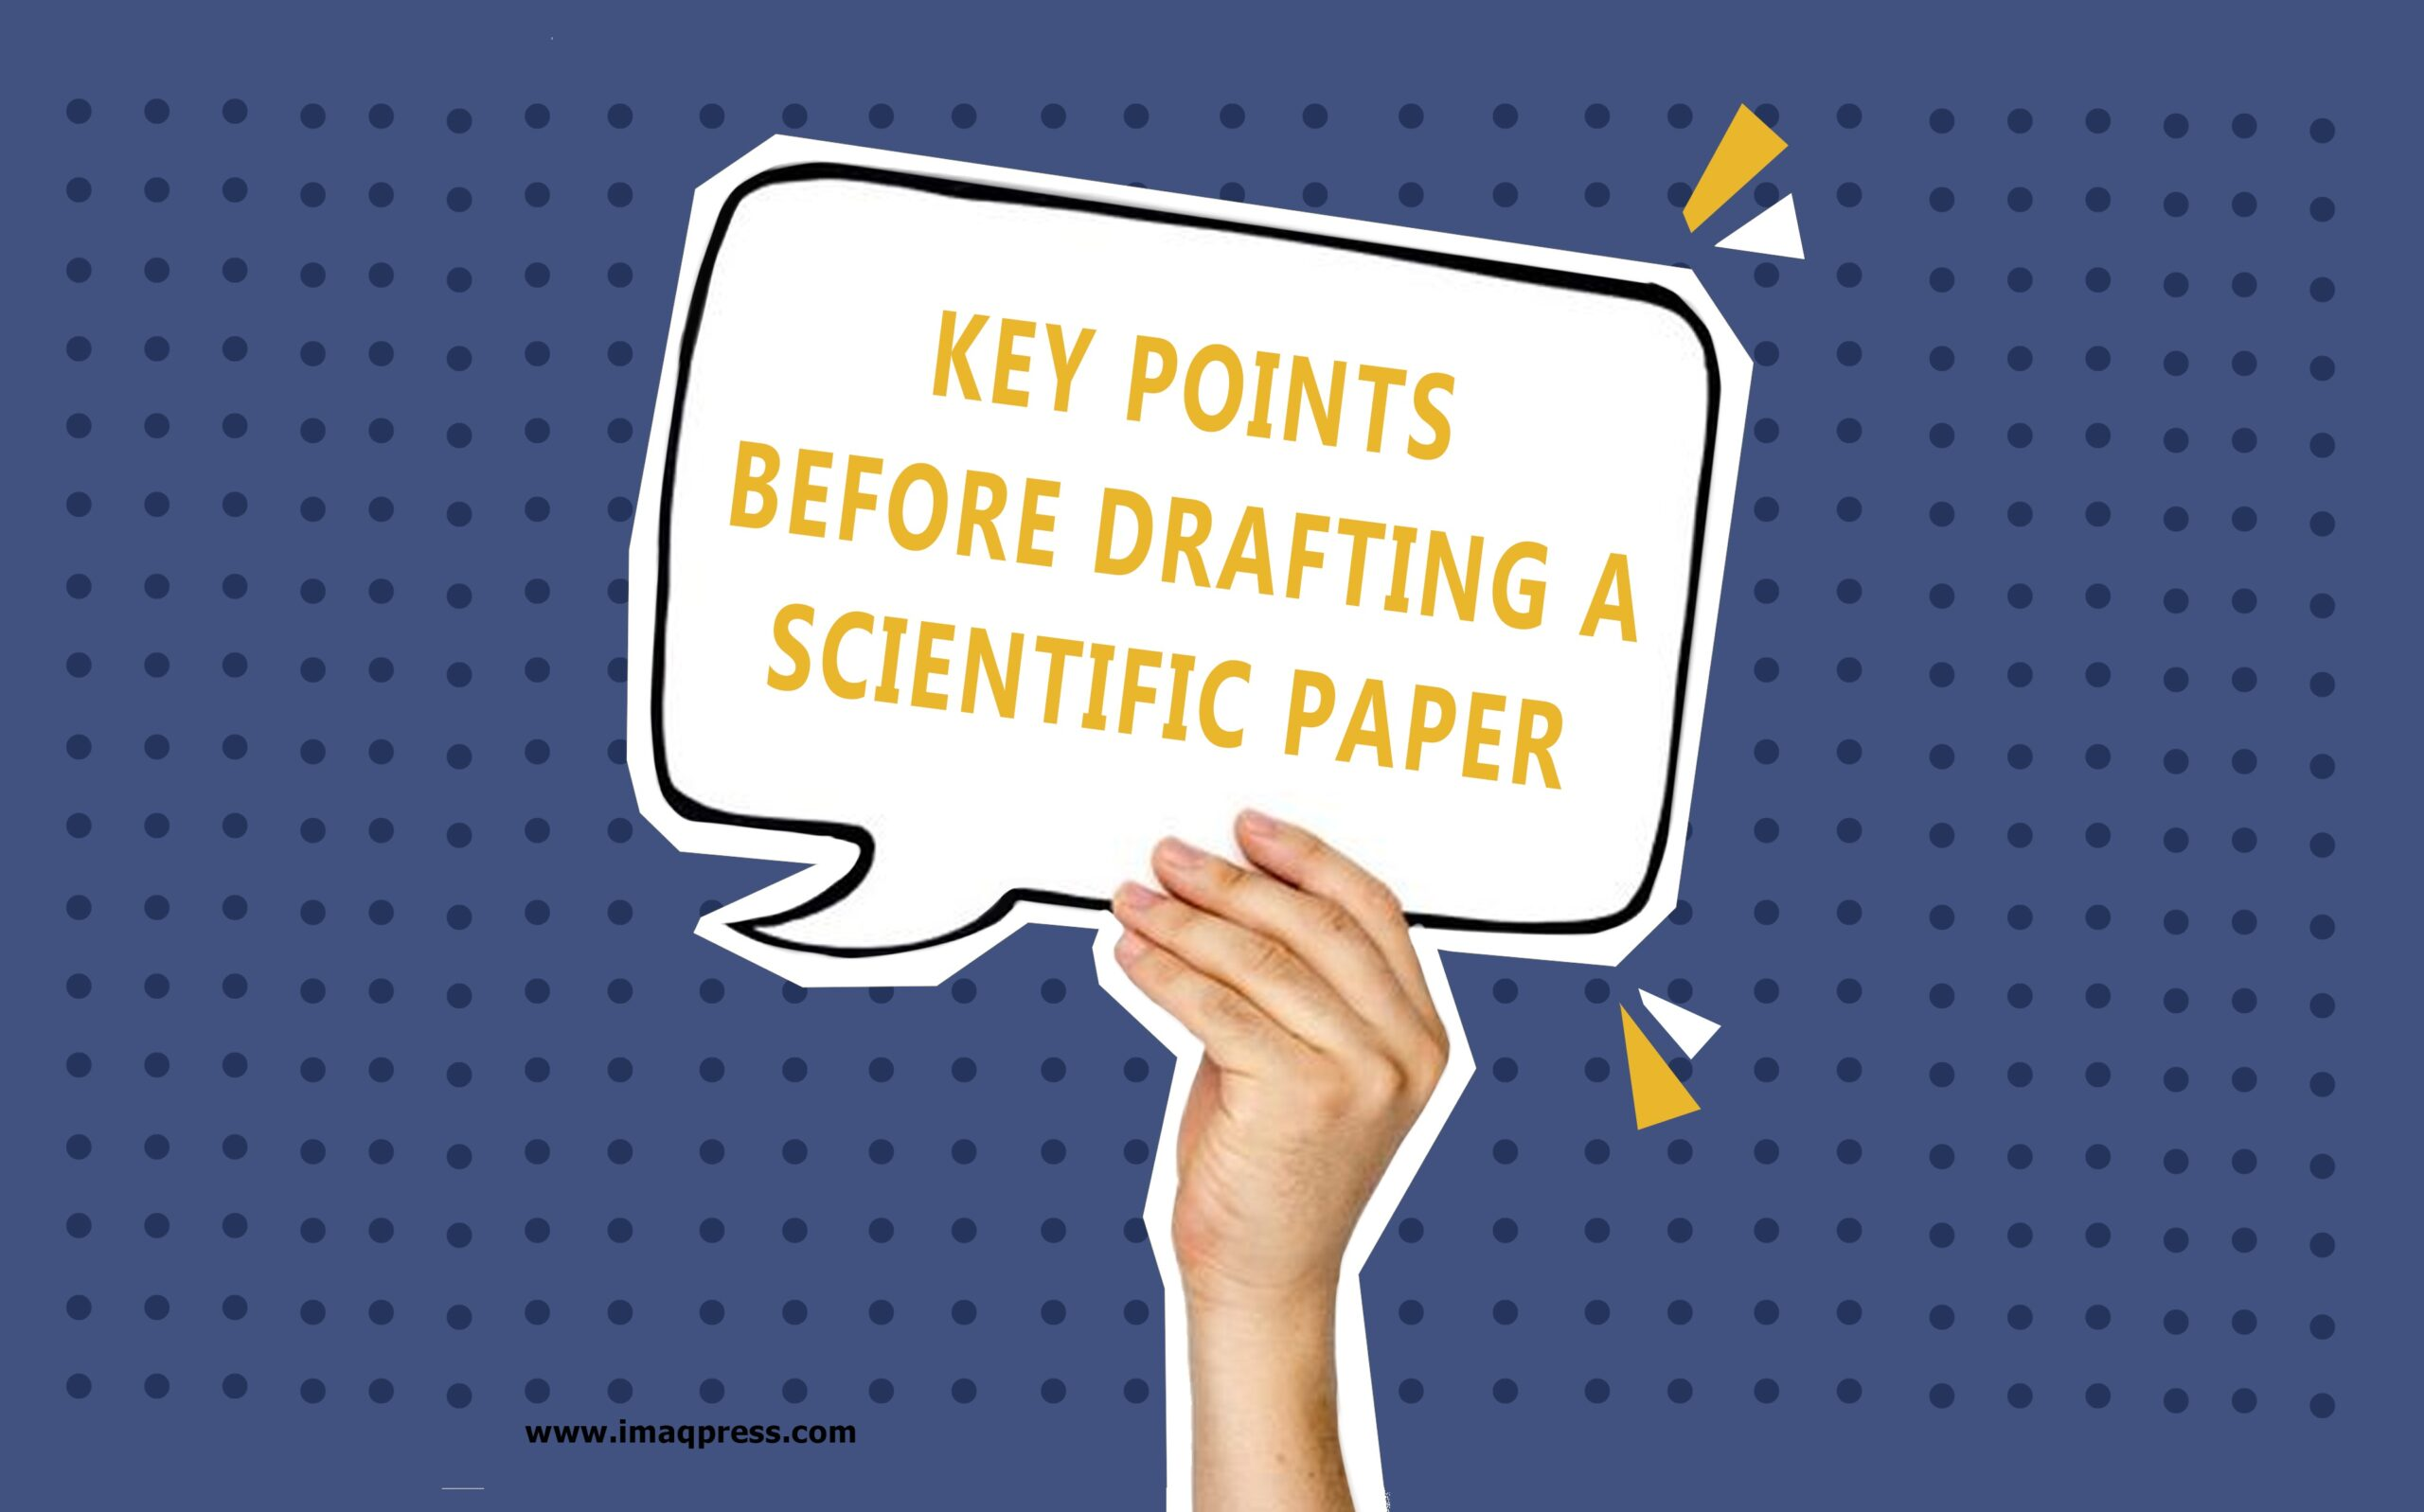 Common Mistakes While Drafting a Scientific Paper